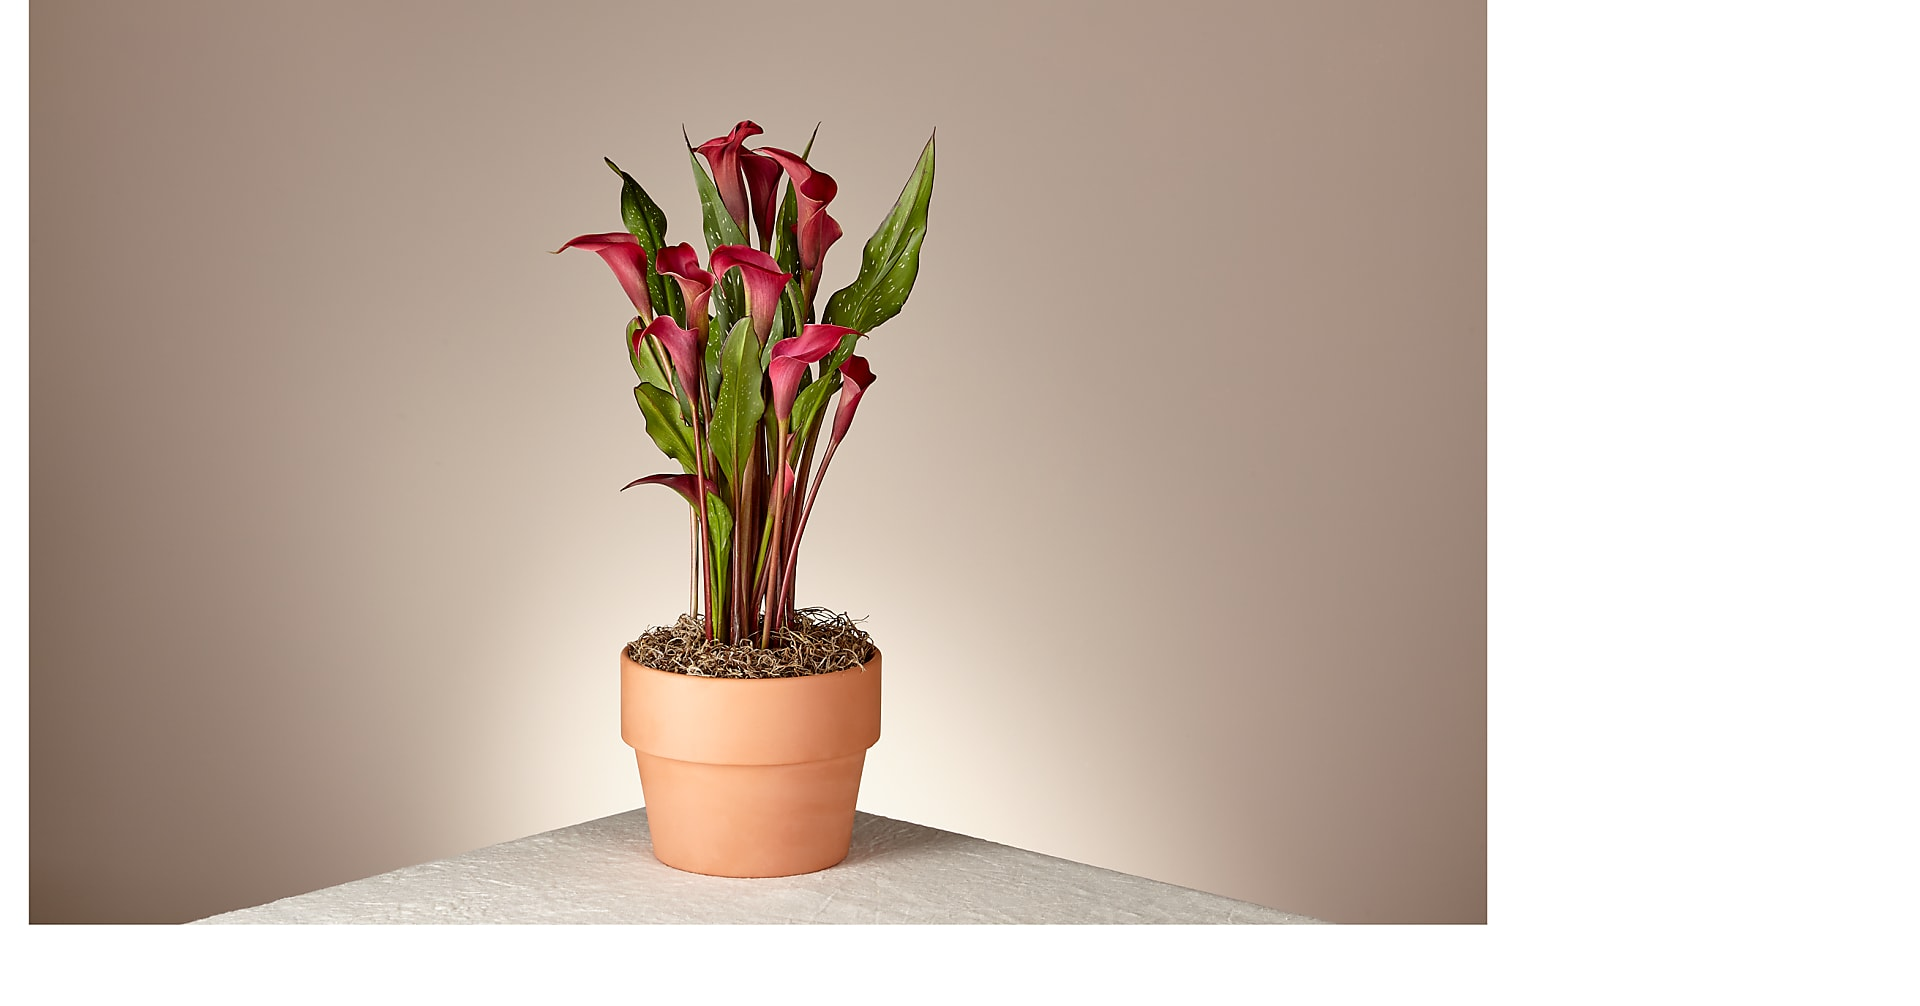 Falling in Love Red Calla Lily - Image 1 Of 2